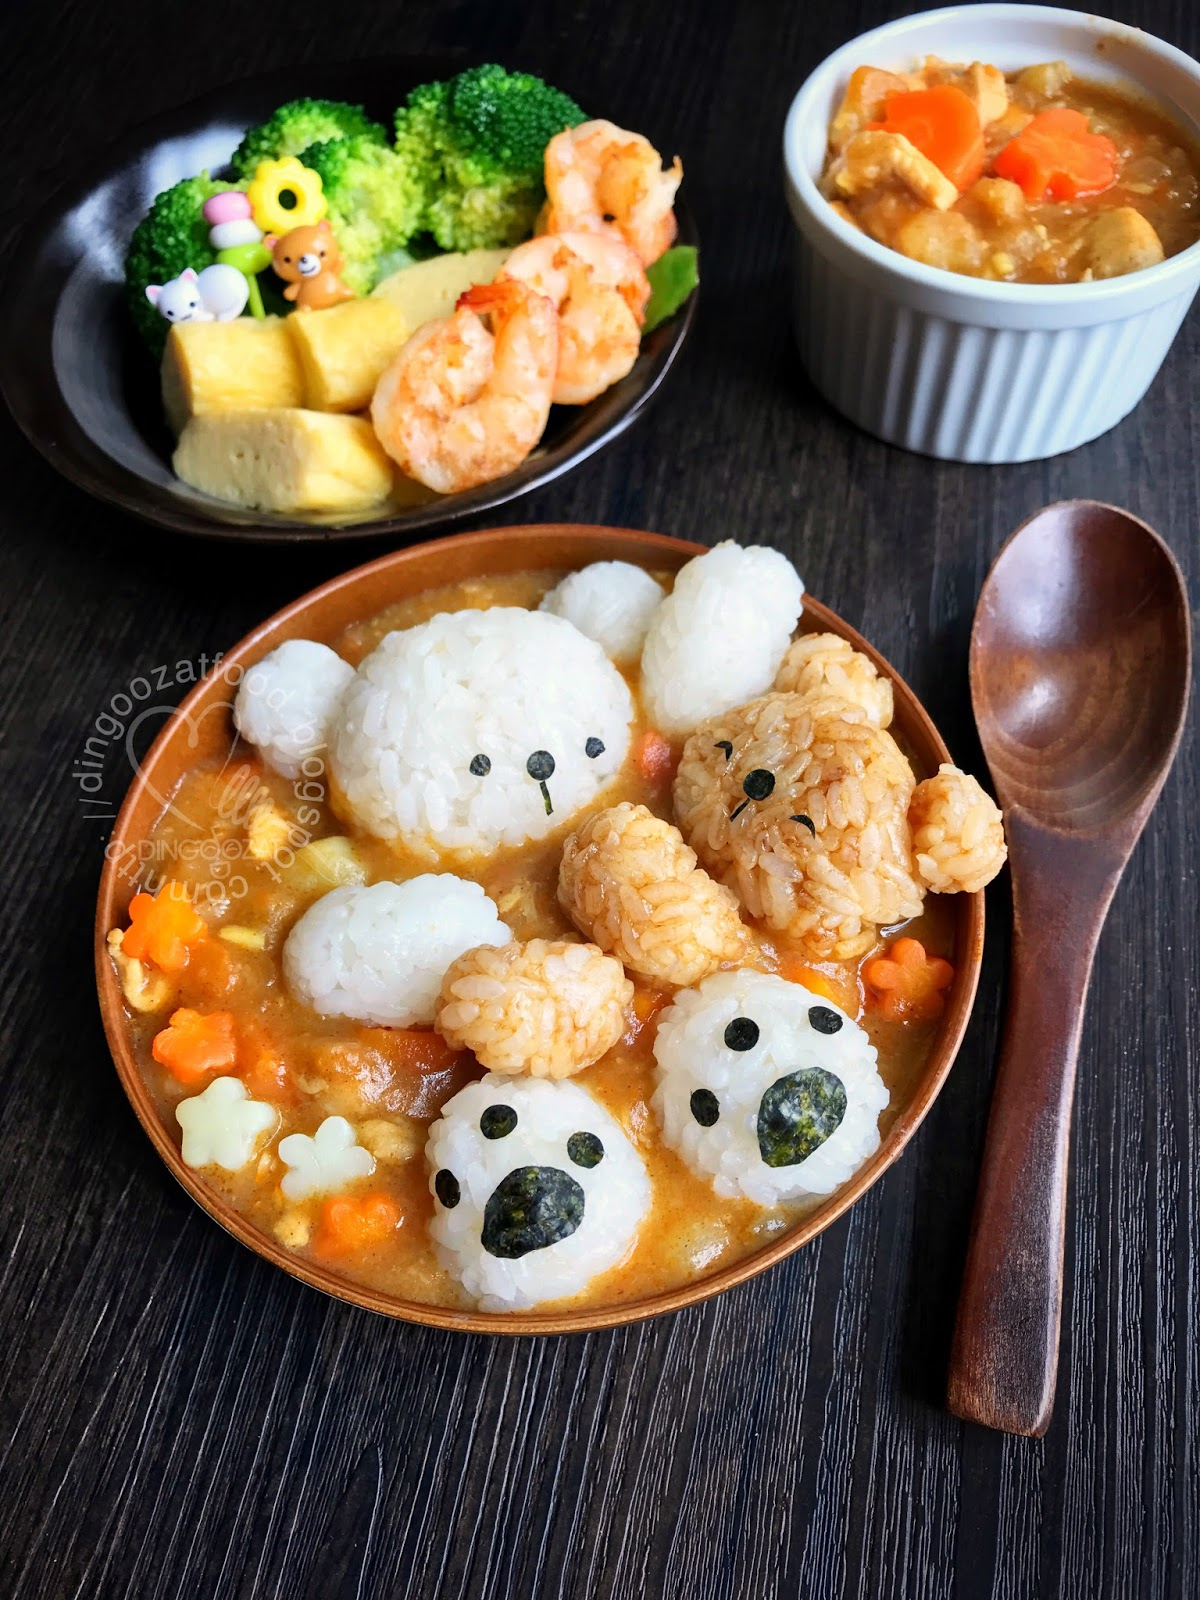 Miki's Food Archives : Cute Bear Onigiri Served In ...